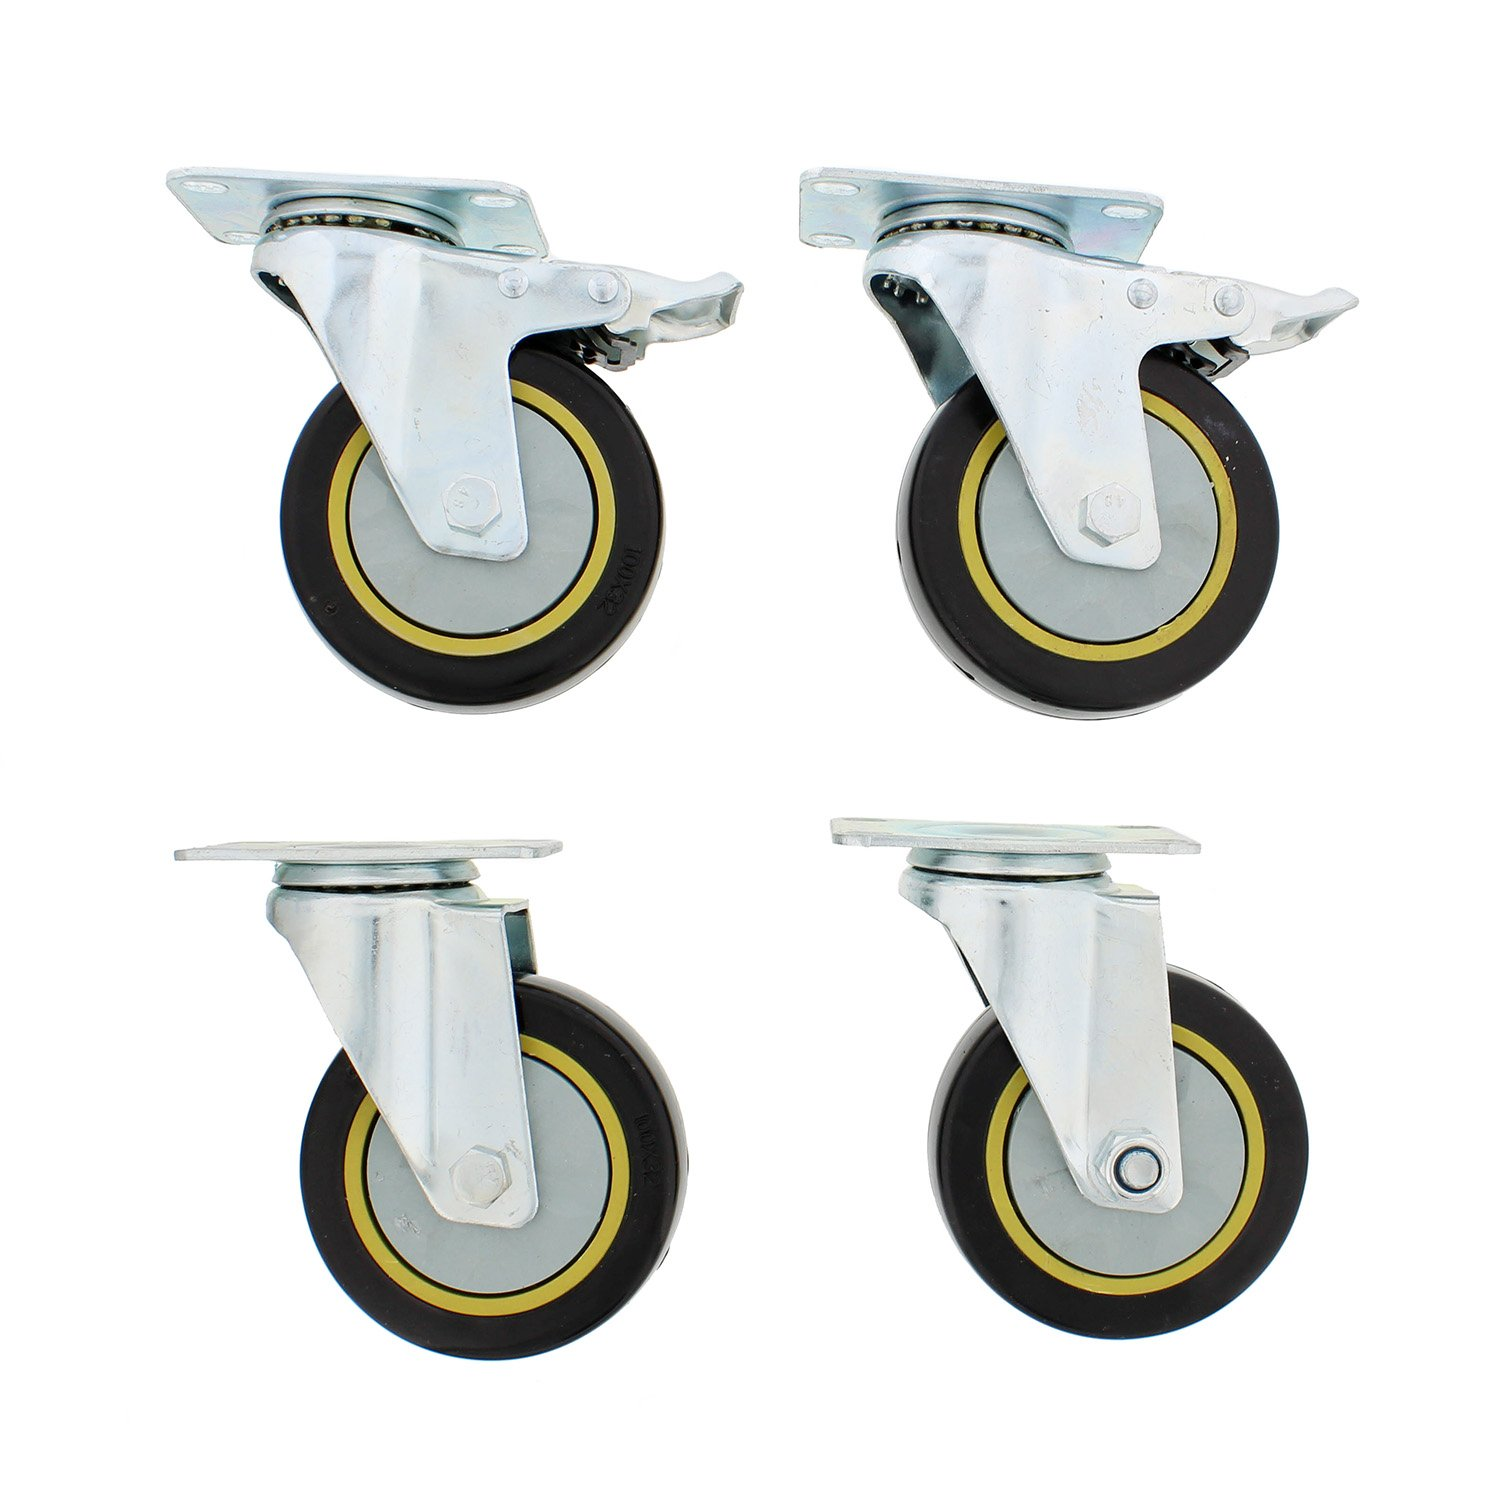 ABN Caster Wheel, 4in, Set of 4 - Heavy-Duty Swivel Stem Locking Casters with Hard Rubber Wheels for Furniture by ABN